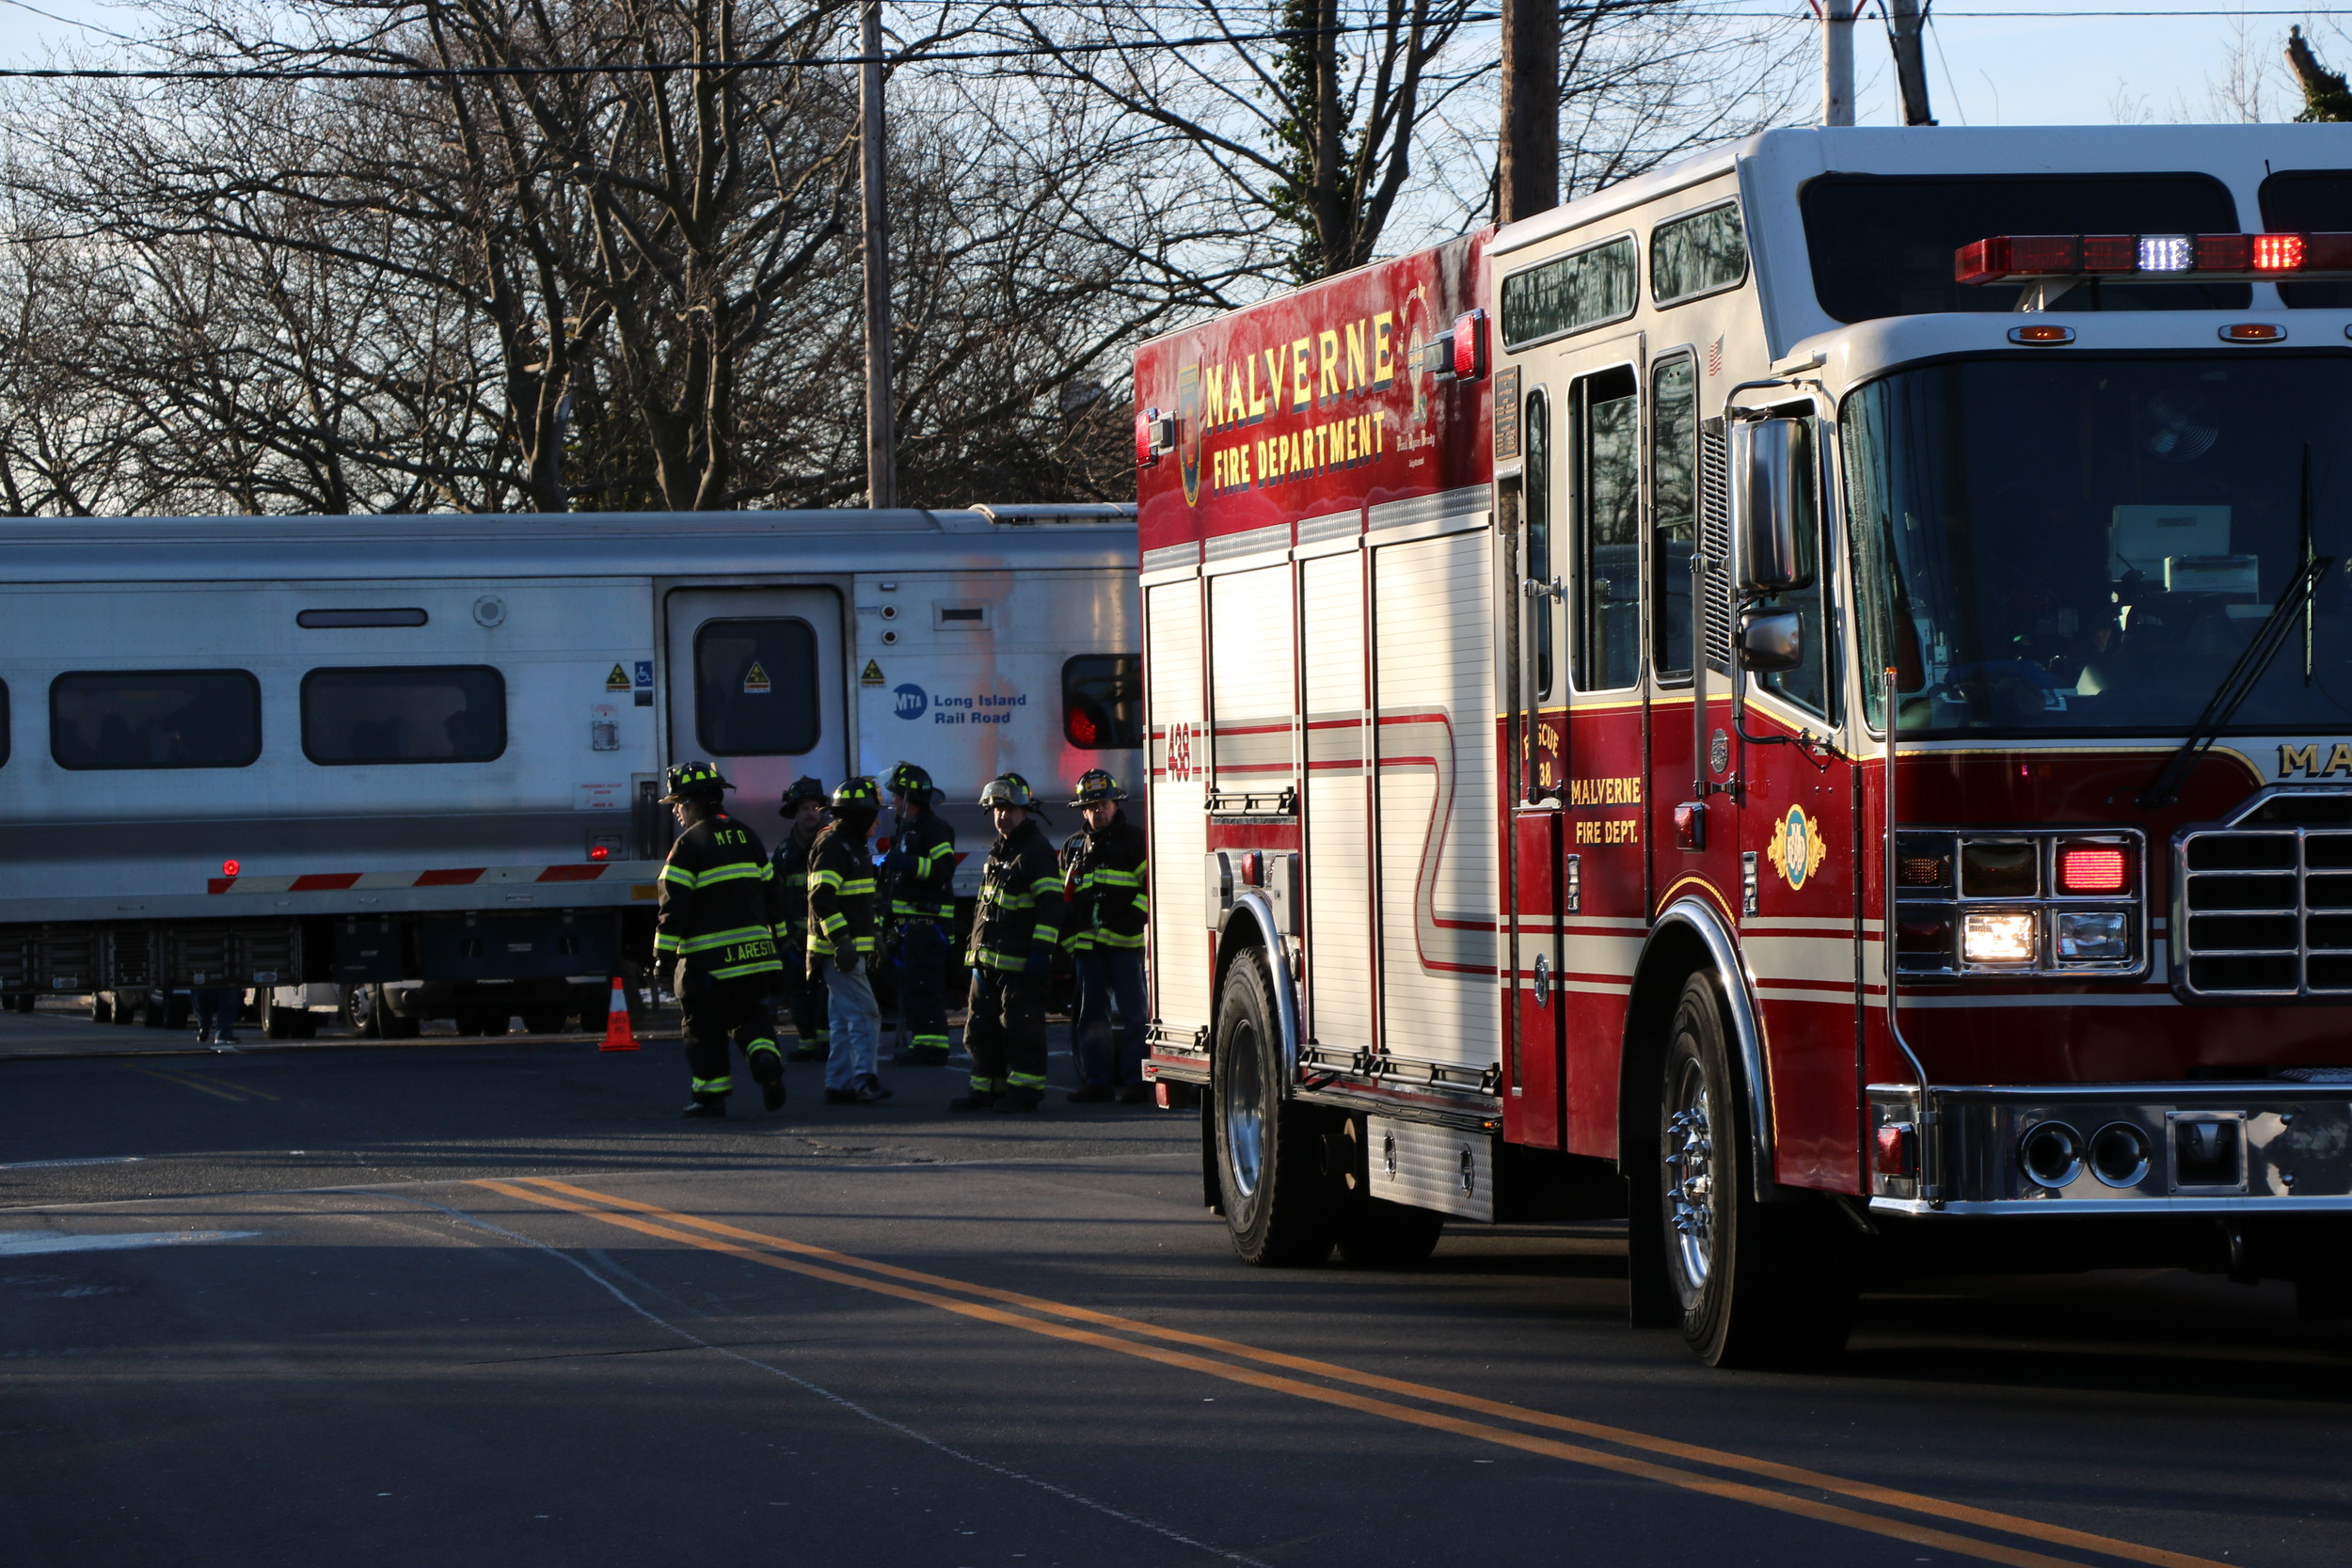 Malverne firefighters on the scene of the crash.